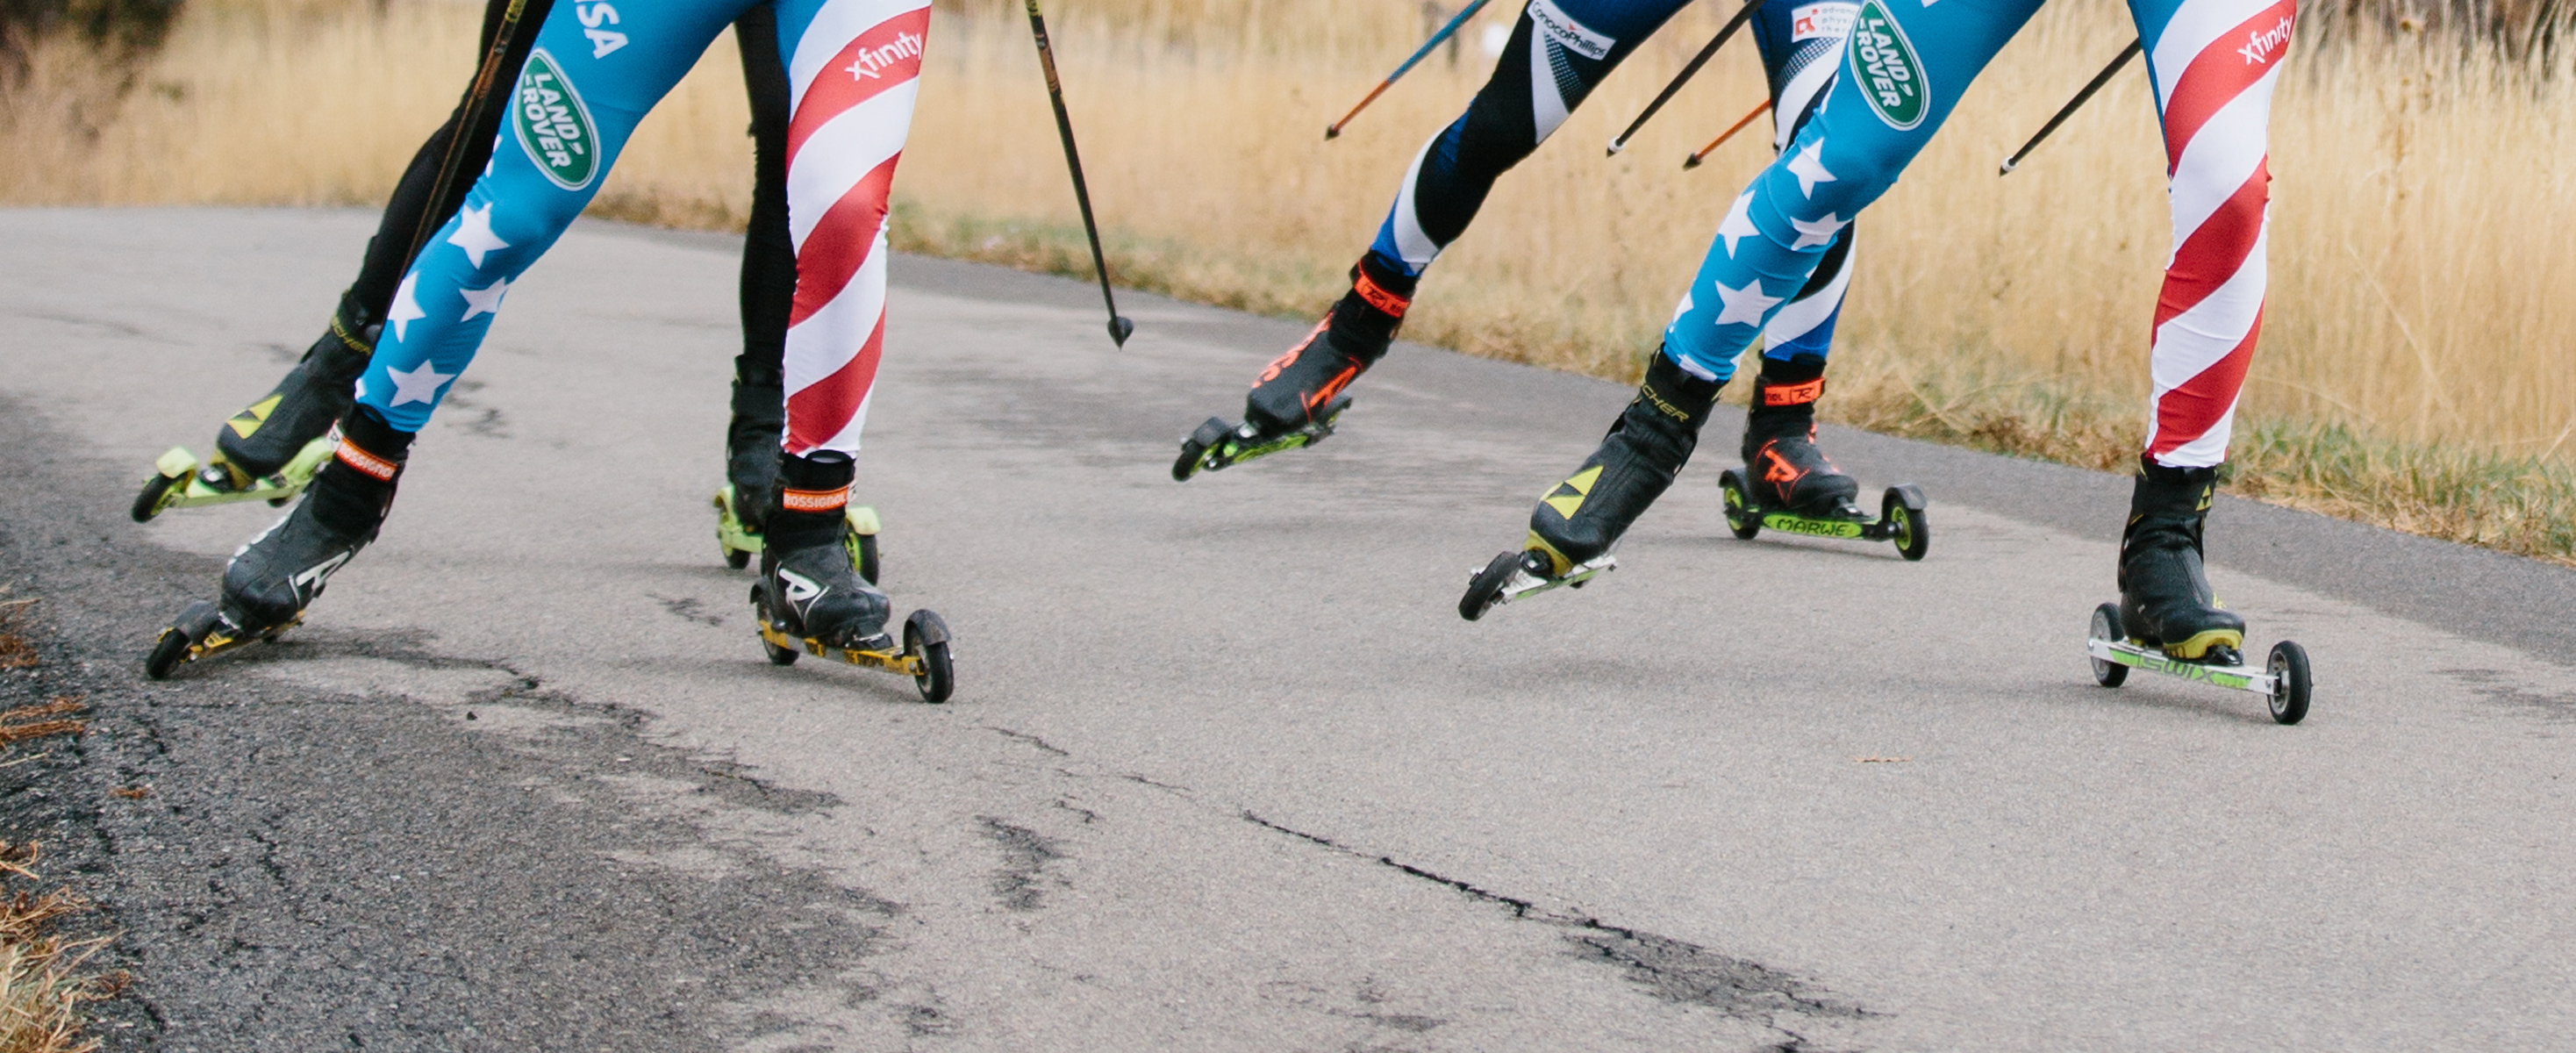 USST Rollerskiing at Soldier Hollow in Oct 2019